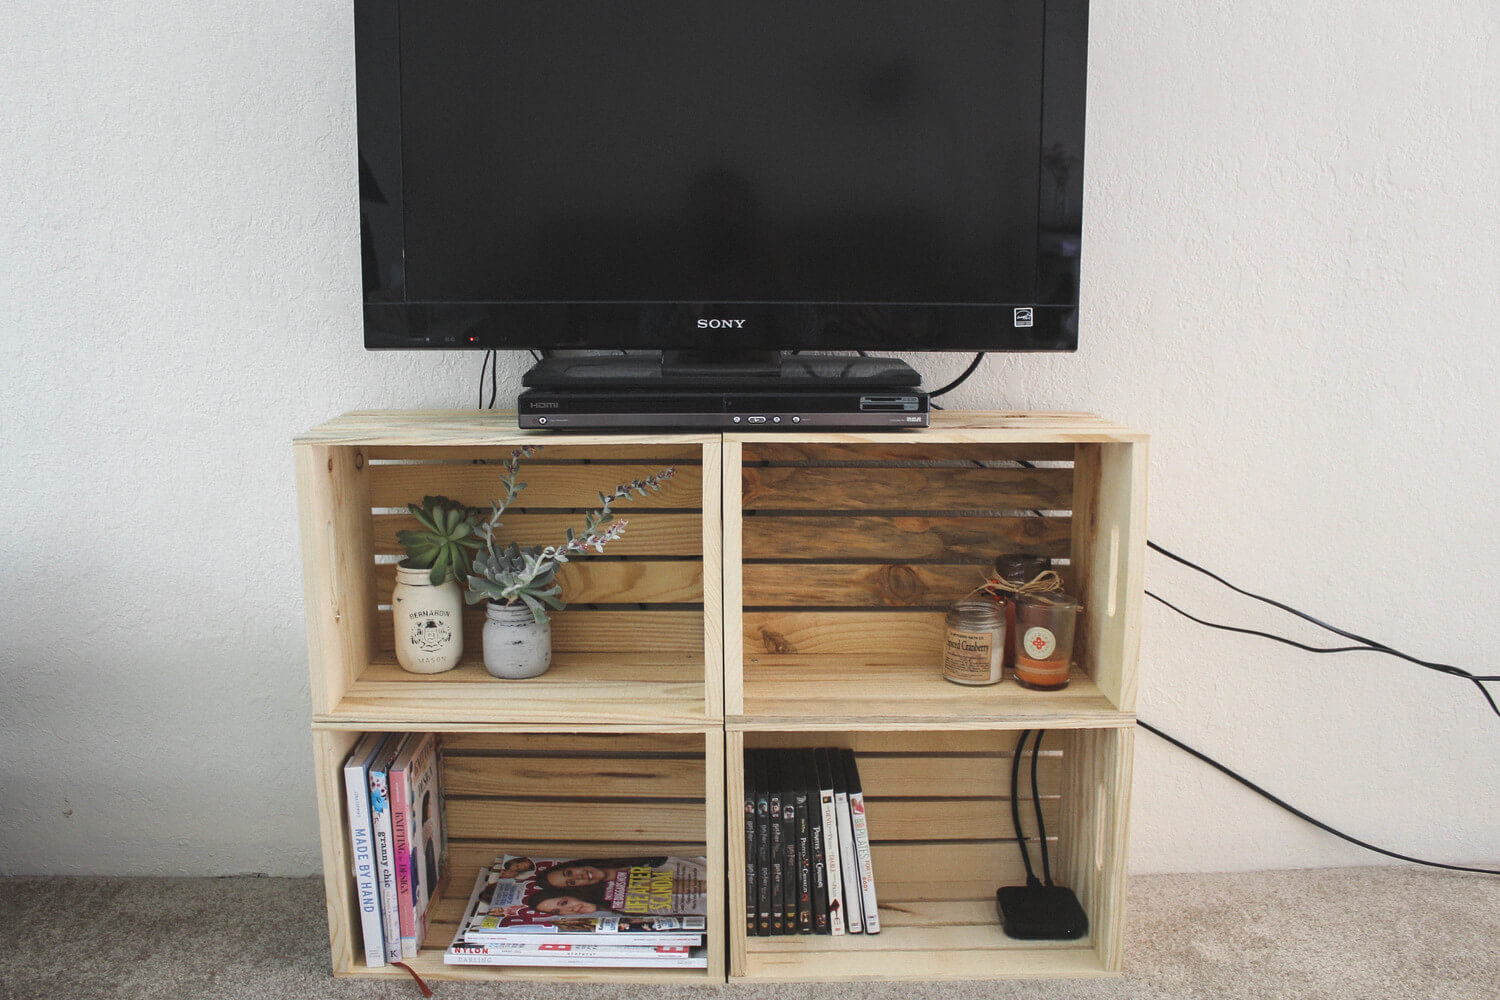 20 Easy And Unique Tv Stand Ideas For Your Next Project Crafty Club Diy Craft Ideas